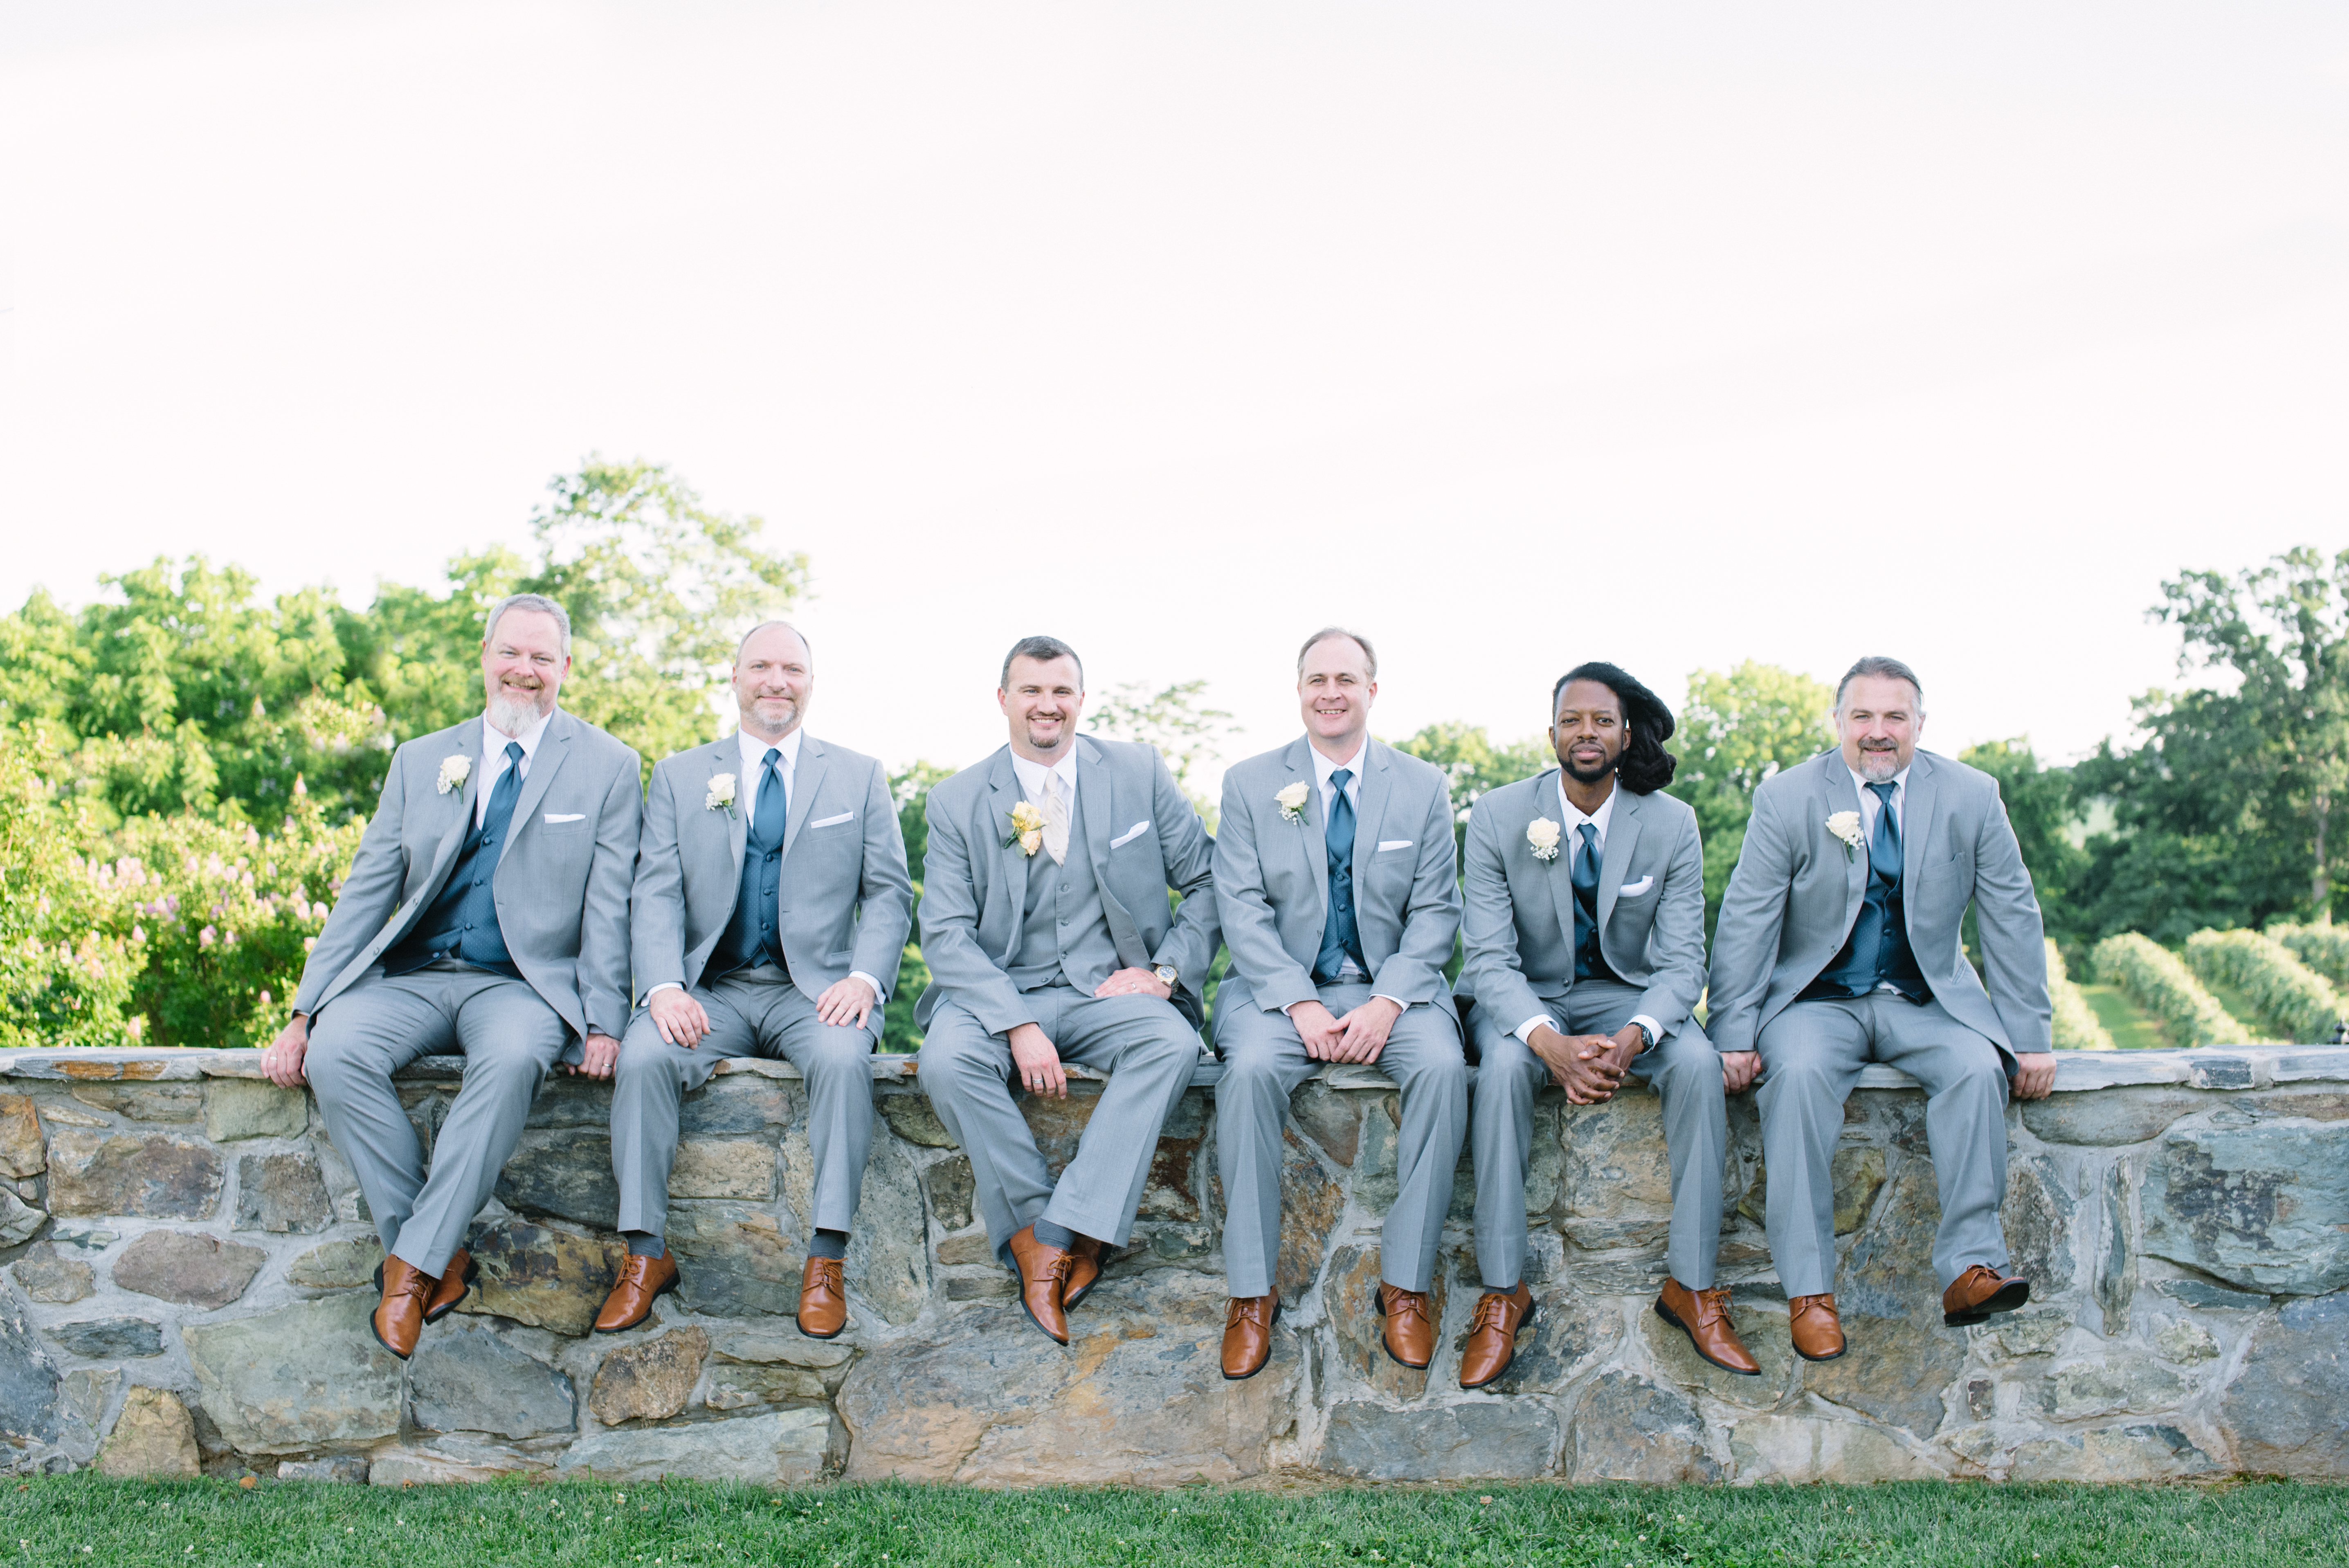 (Photo credit: Brittany Renee Photography LLC // www.brittany-renee.com)